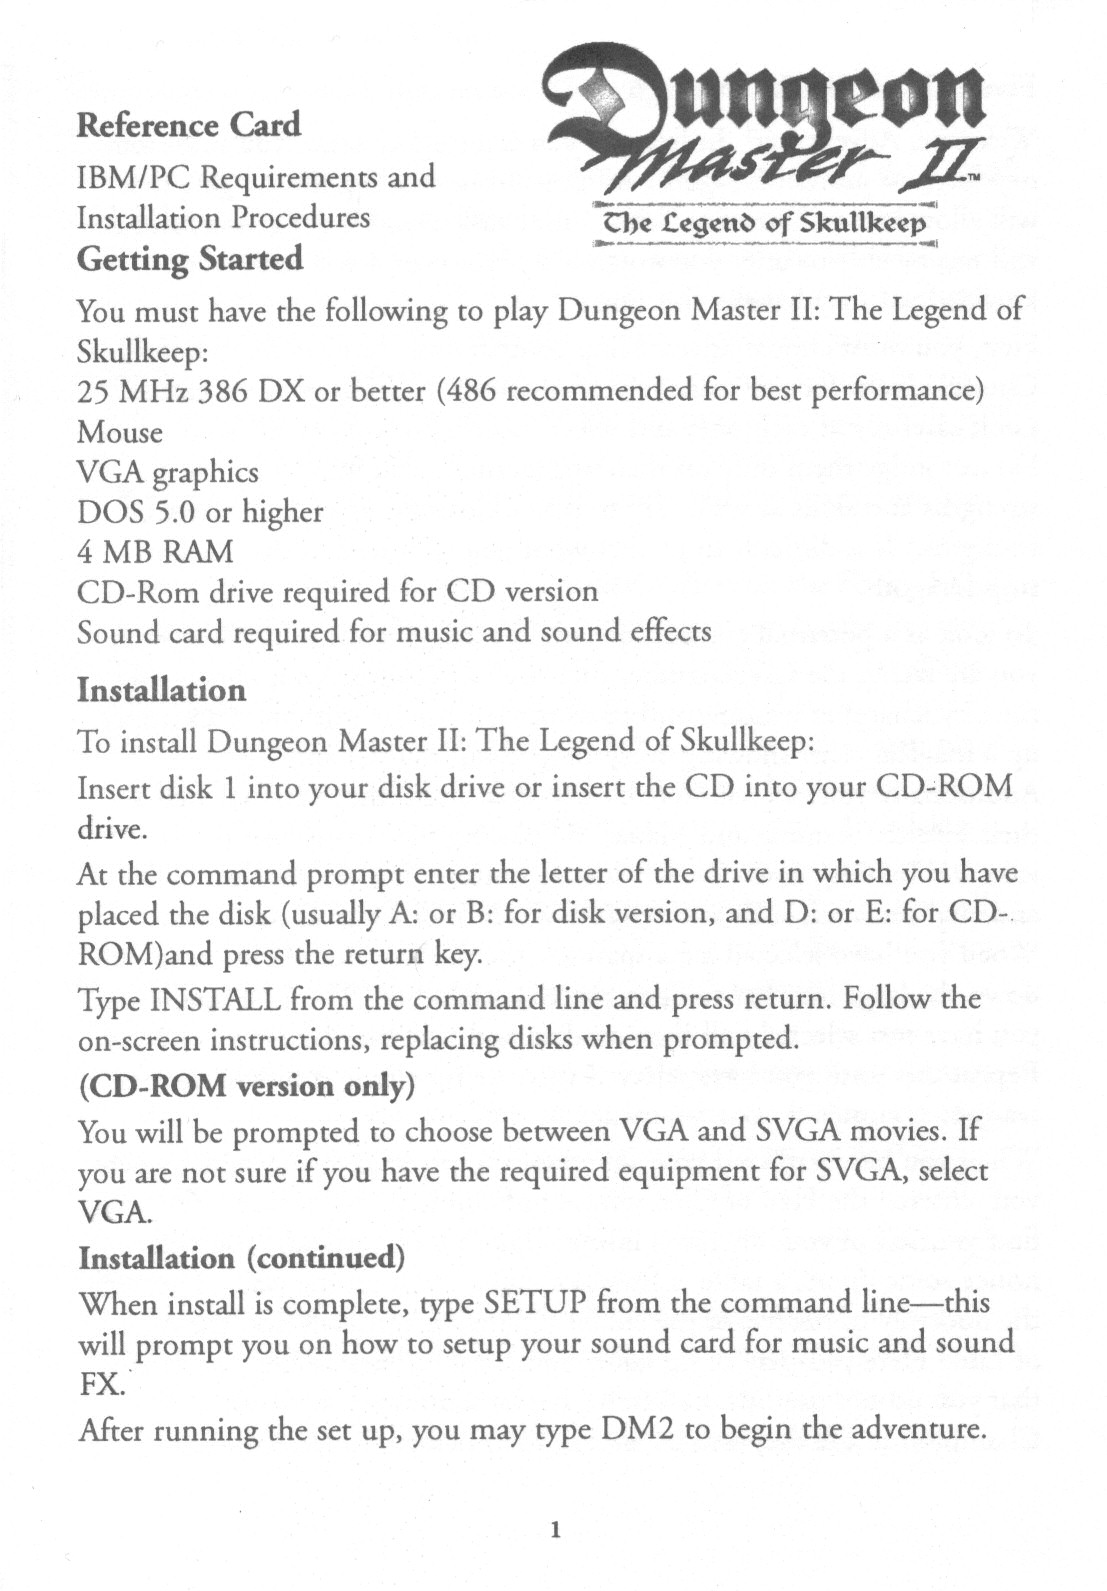 Dungeon Master II for PC (English, CD) - Reference Card - Page 1